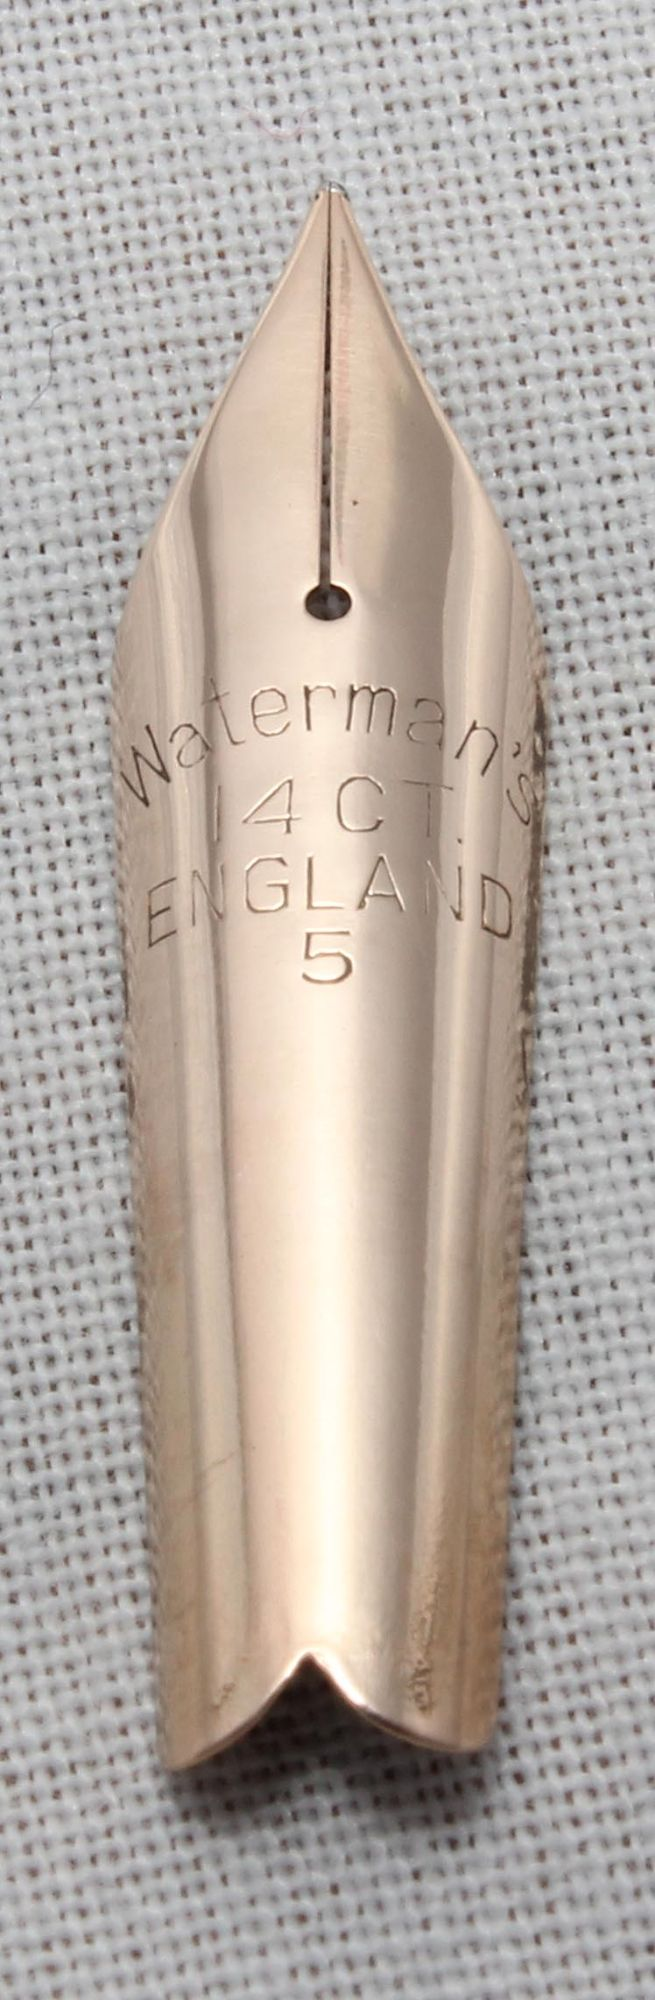 Watermans Ideal #5 Nib (Fine)